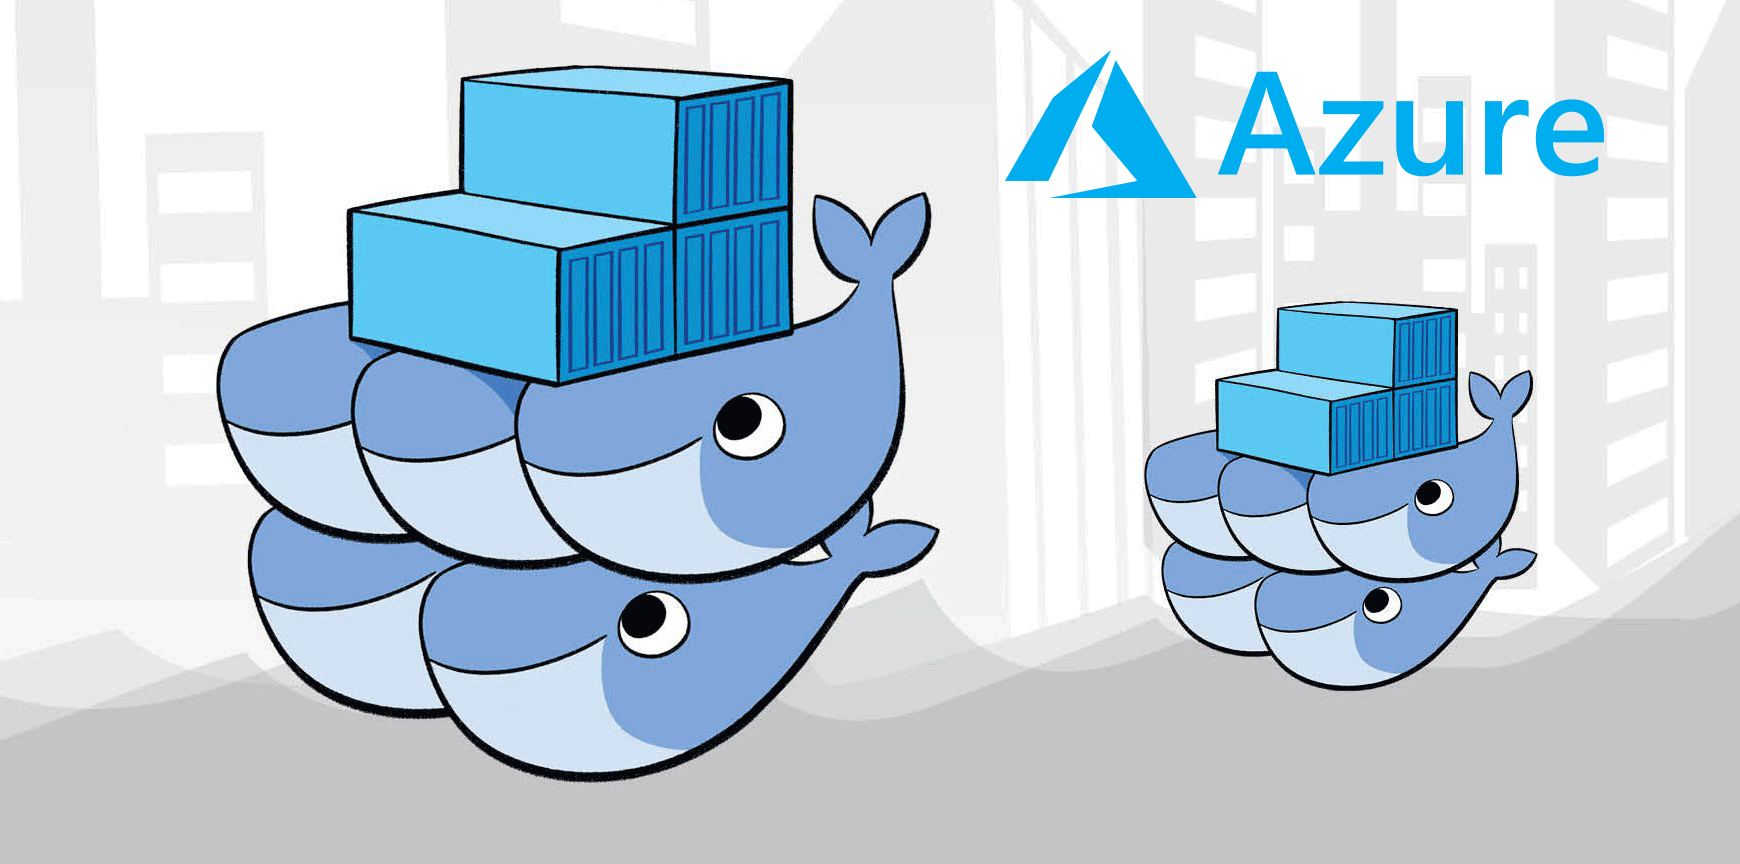 Deploying to Docker Swarm on Microsoft Azure (part 2 of 3)